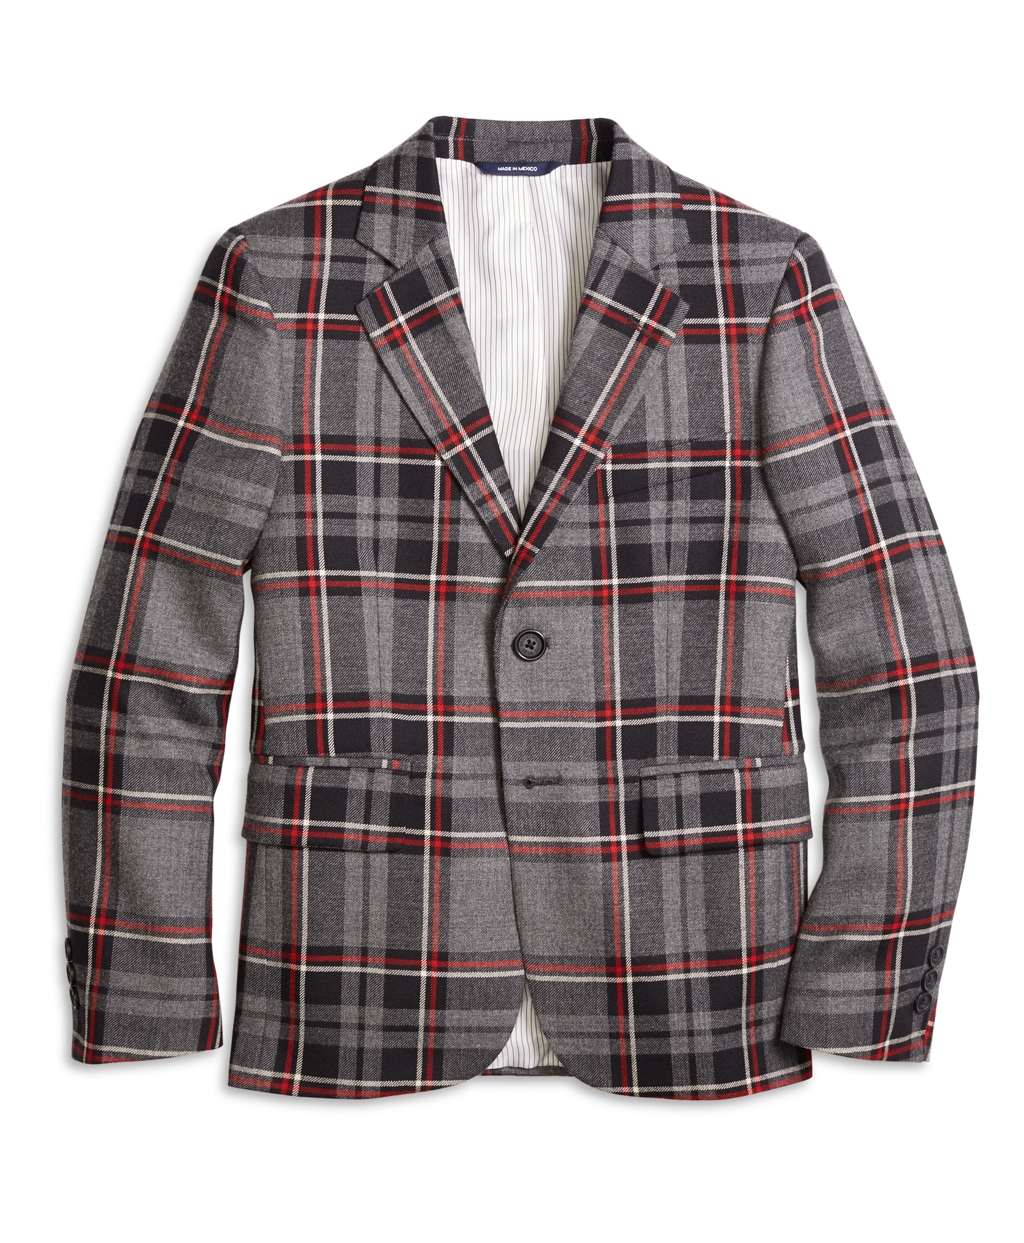 Vintage Style Children's Clothing: Girls, Boys, Baby, Toddler Brooks Brothers Boys Boys Two-Button Plaid Wool Suit Jacket $228.00 AT vintagedancer.com